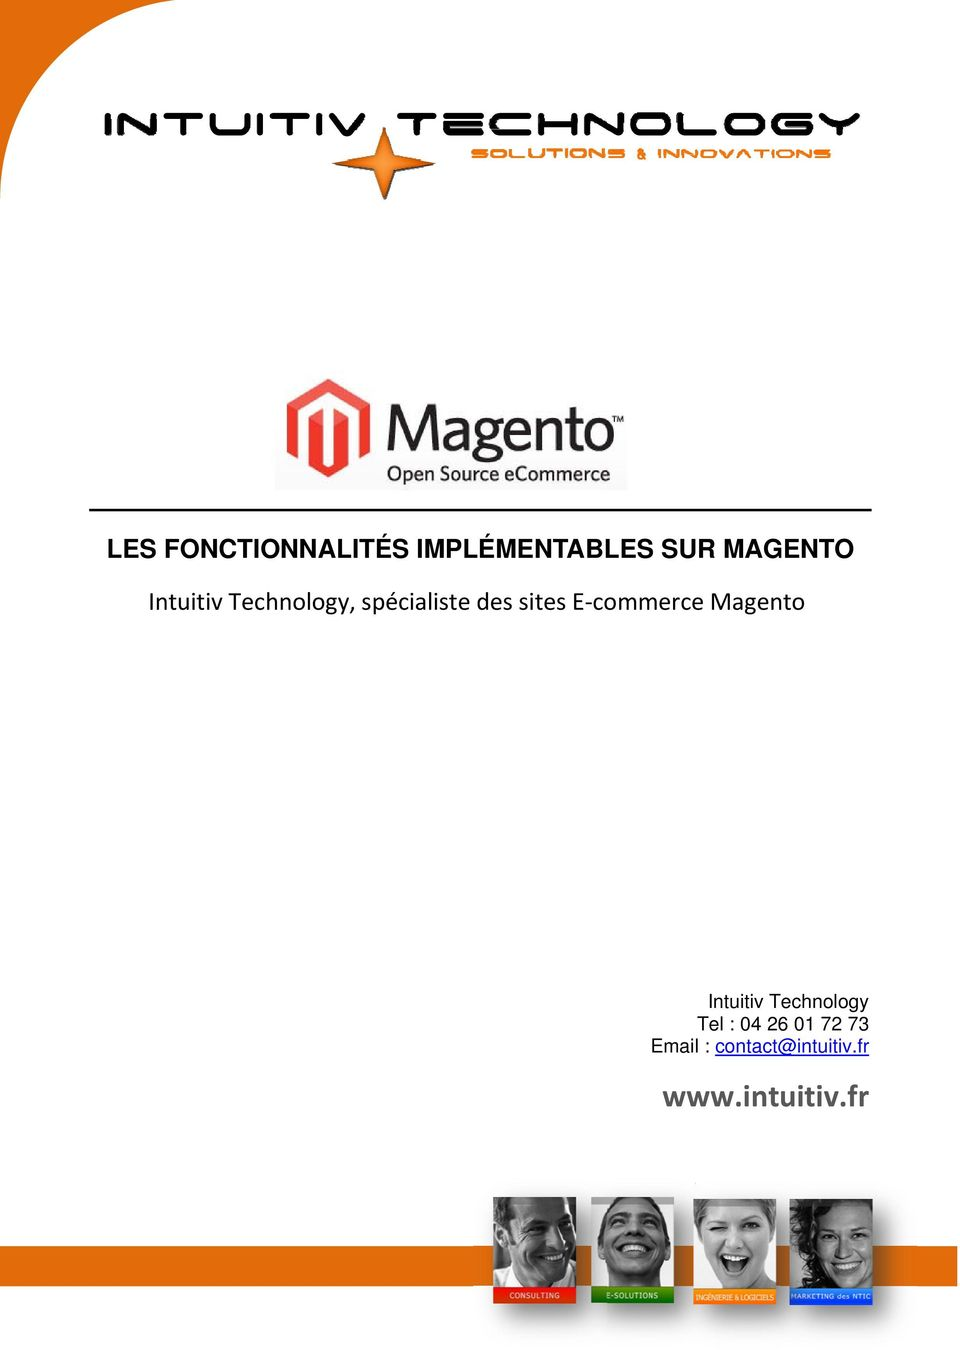 commercee Magento Intuitiv Technology Tel : 04